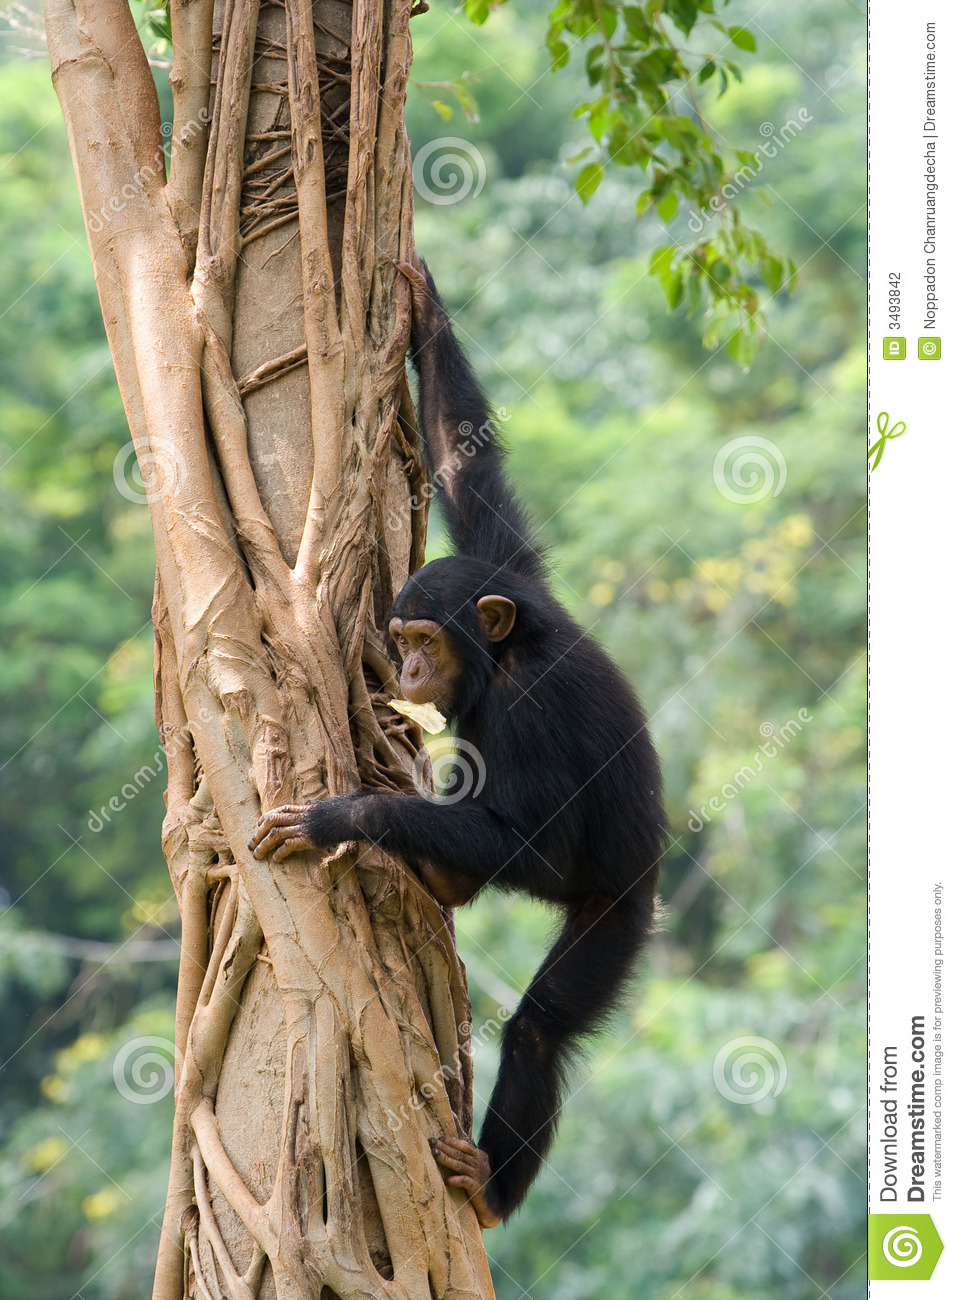 Chimpanzee Stock Photography - Image: 3493842